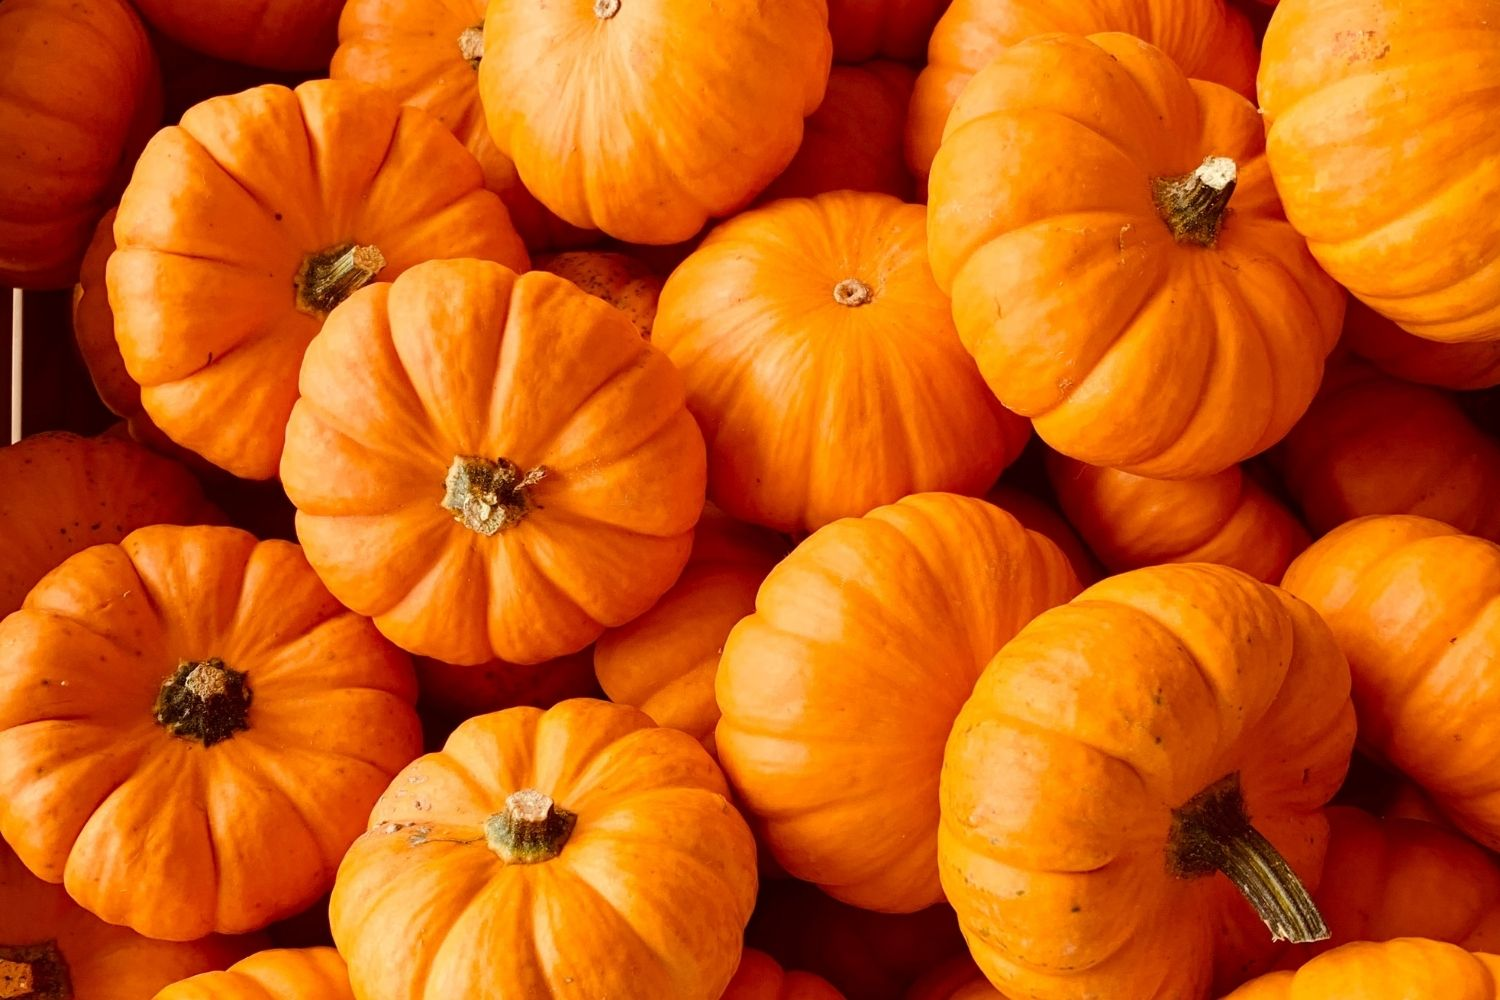 Oh My Gourd! 5 Yummy Fall Pumpkin Recipes for Your Dog